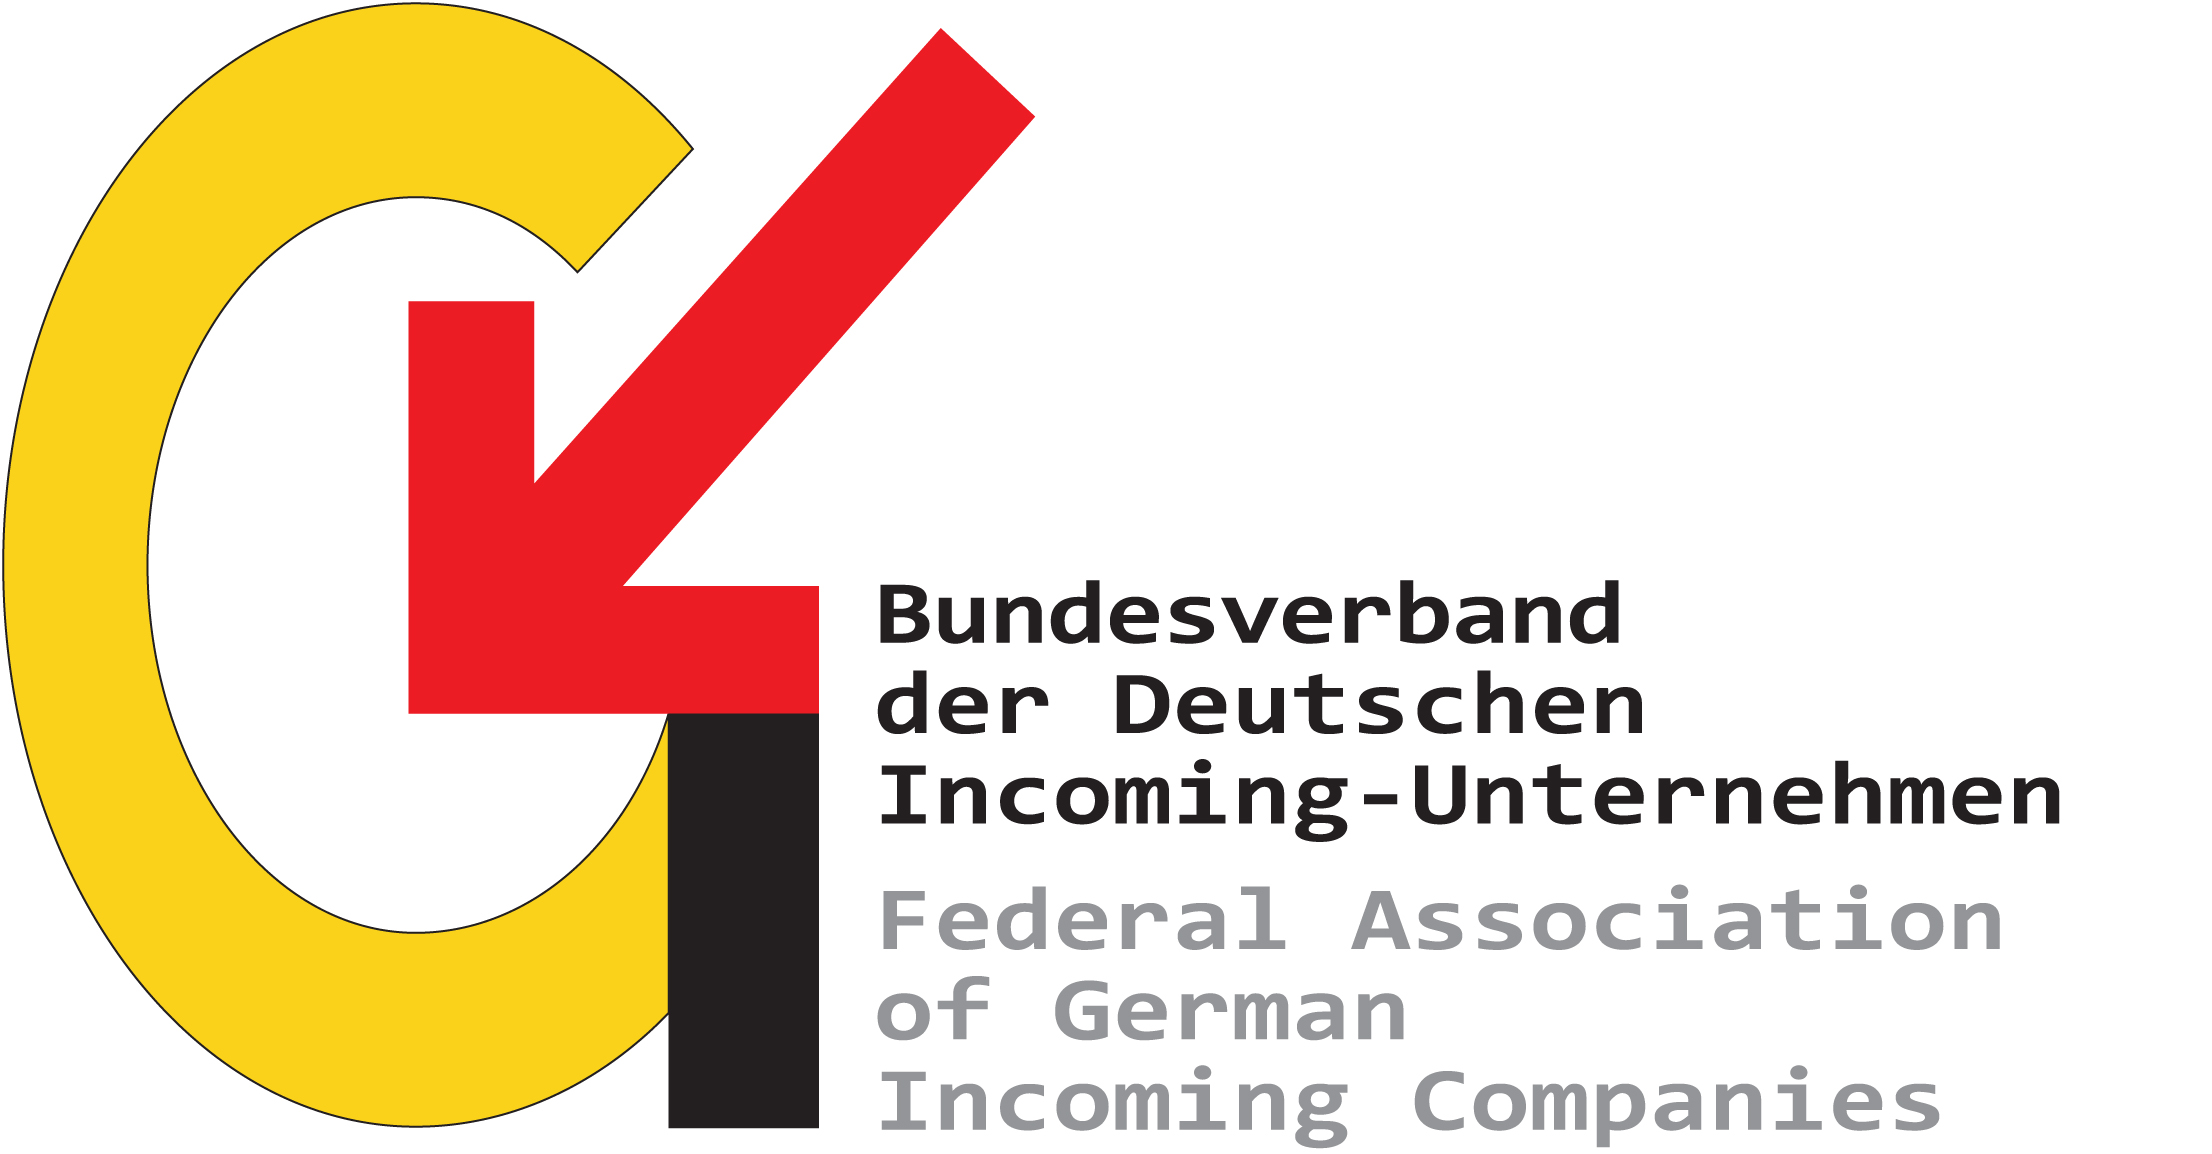 Federal Association of German Incoming Companies